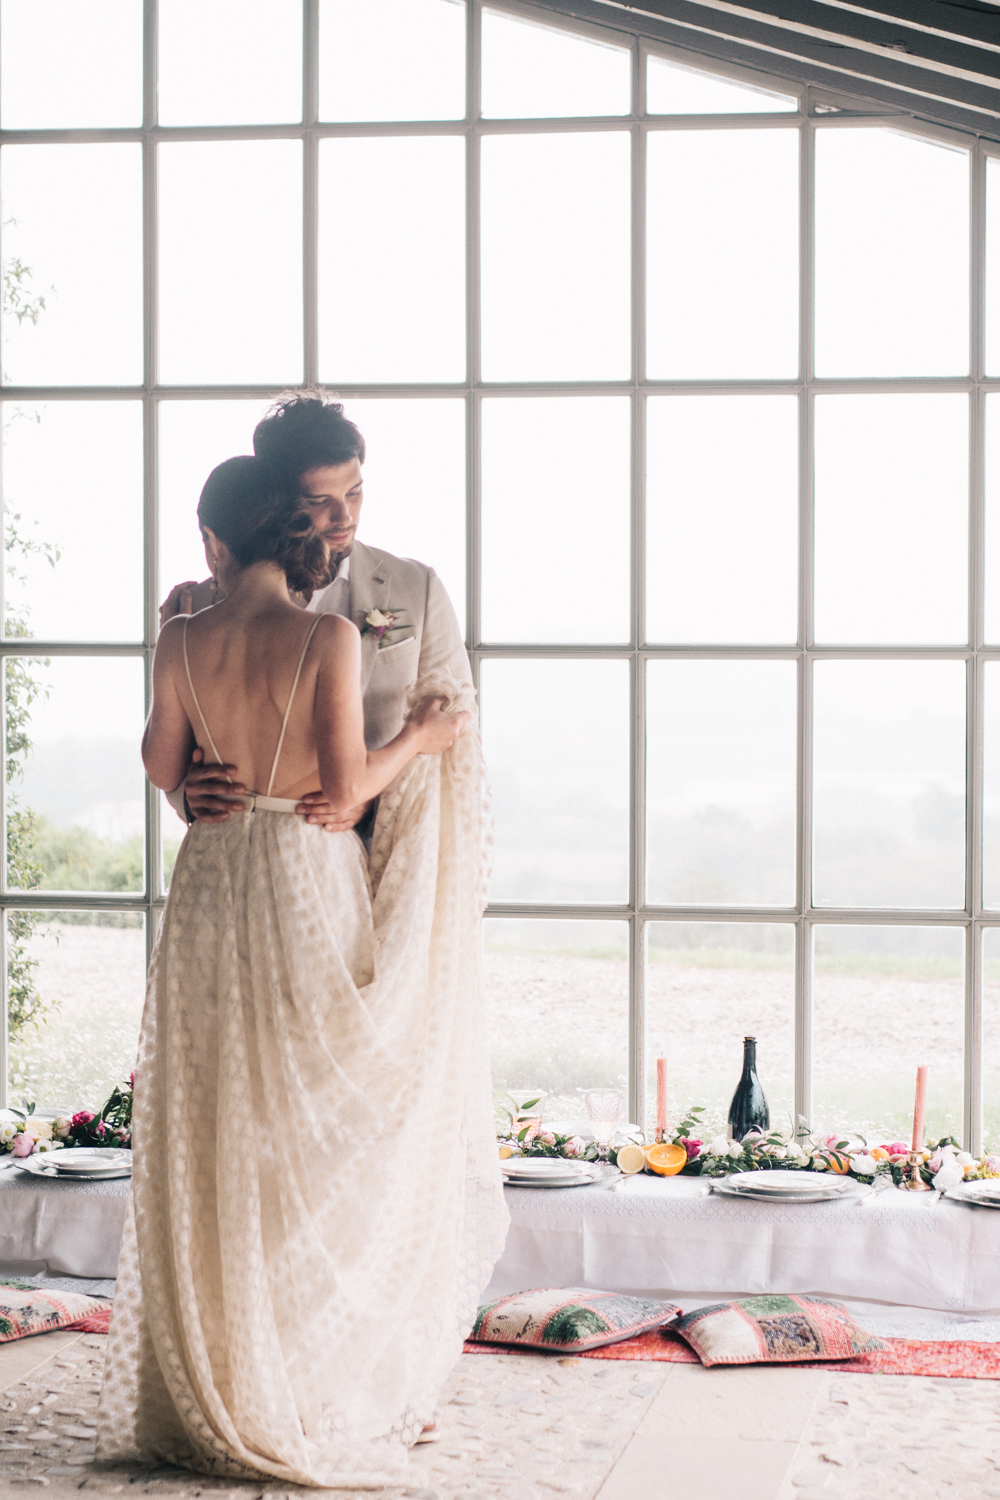 San Sebastian Destination Wedding Photographer